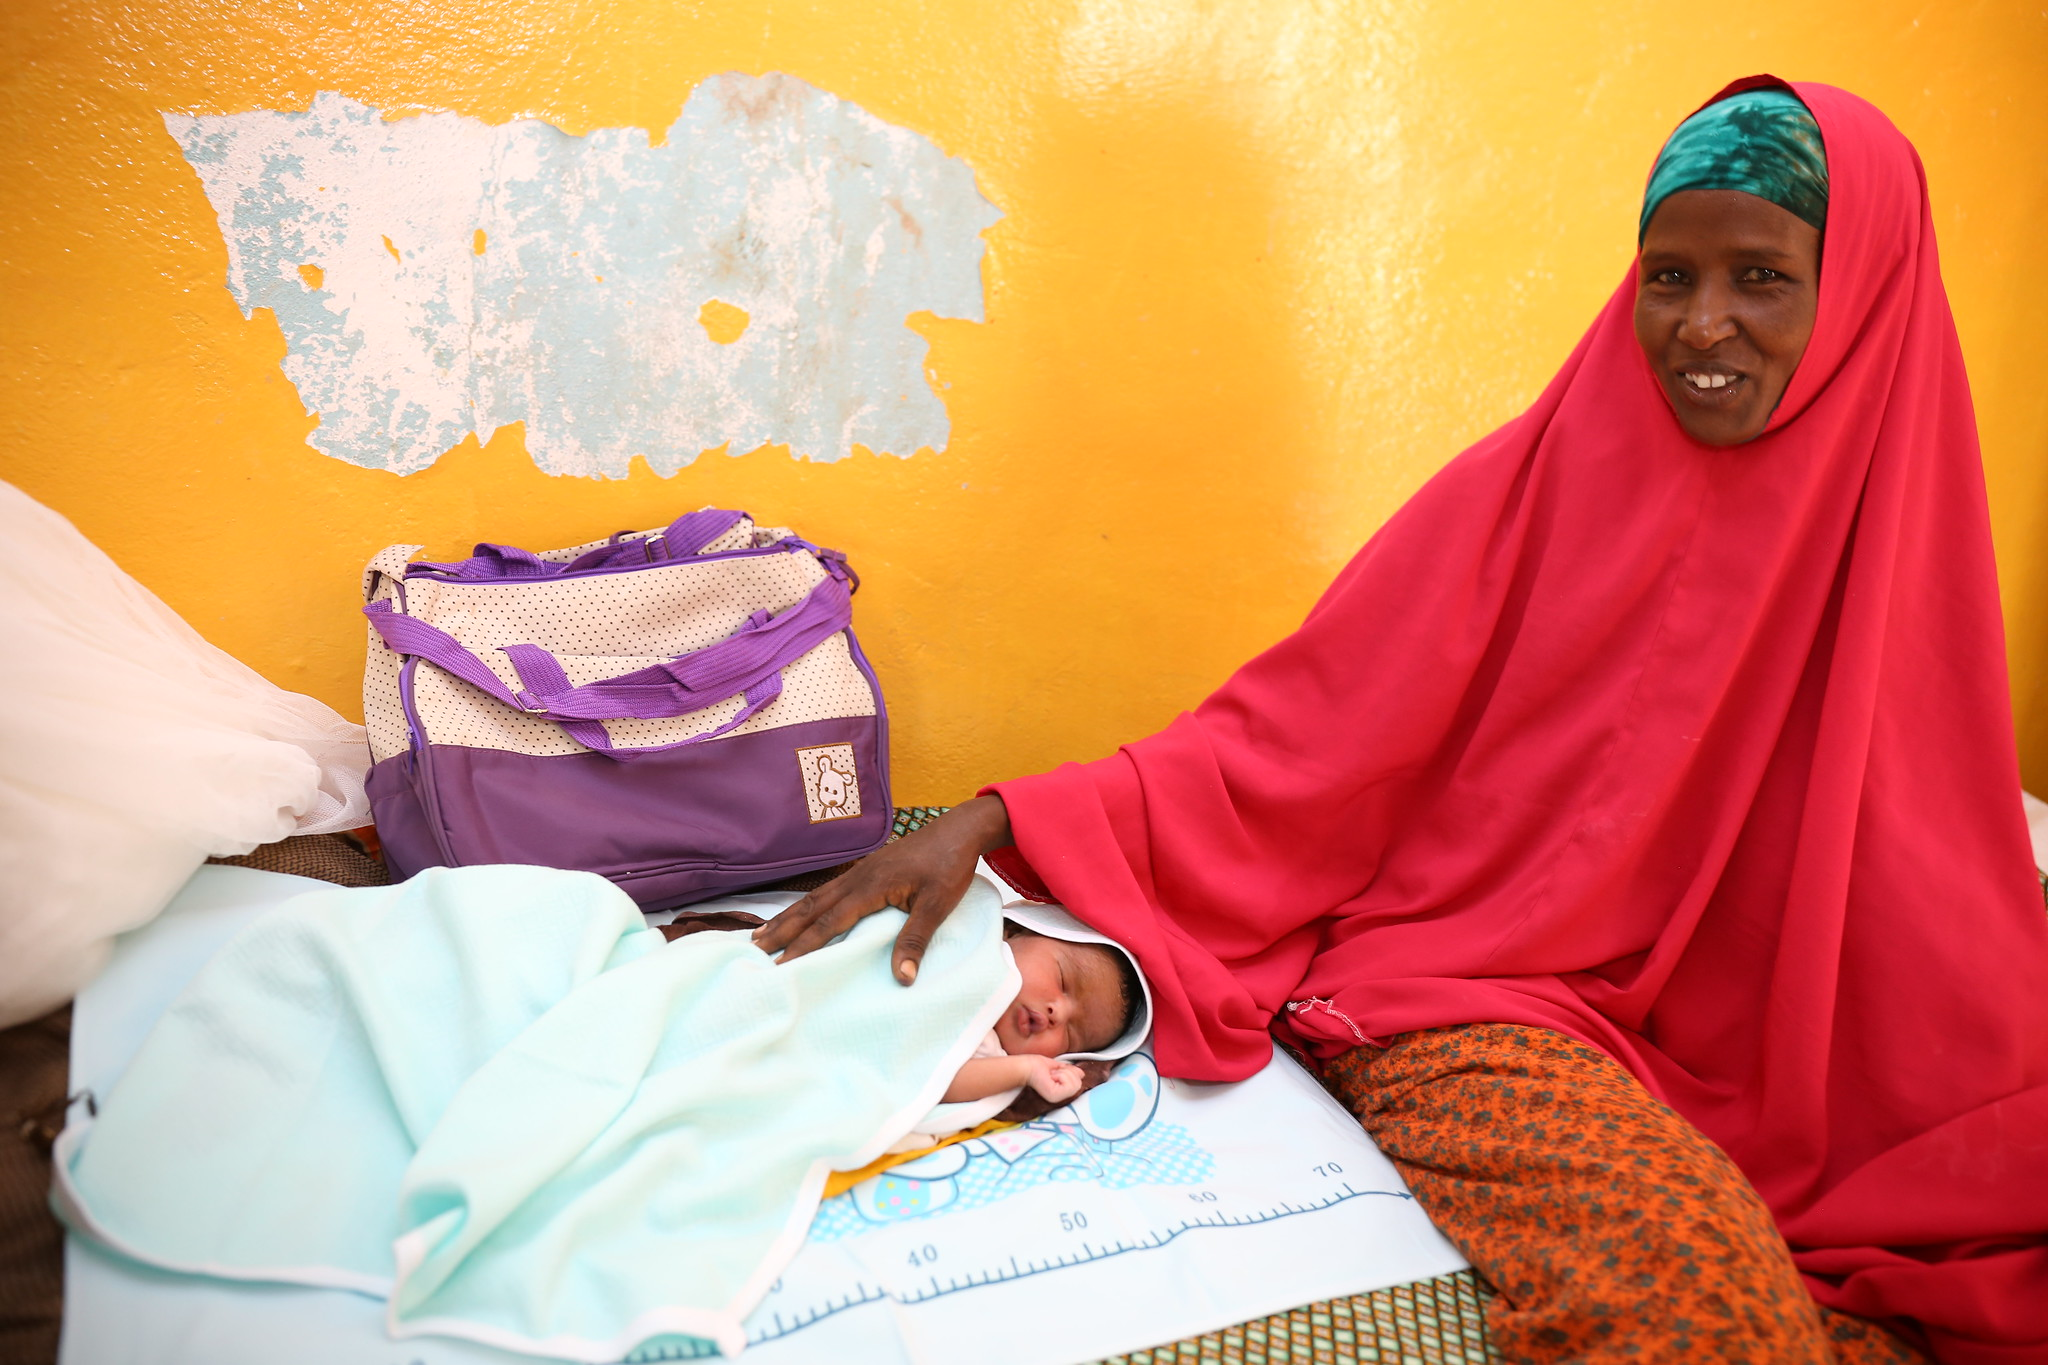 Nasra Ali Baale receives her baby kit from Trócaire. Photo: Eyeris Communications/Trócaire.